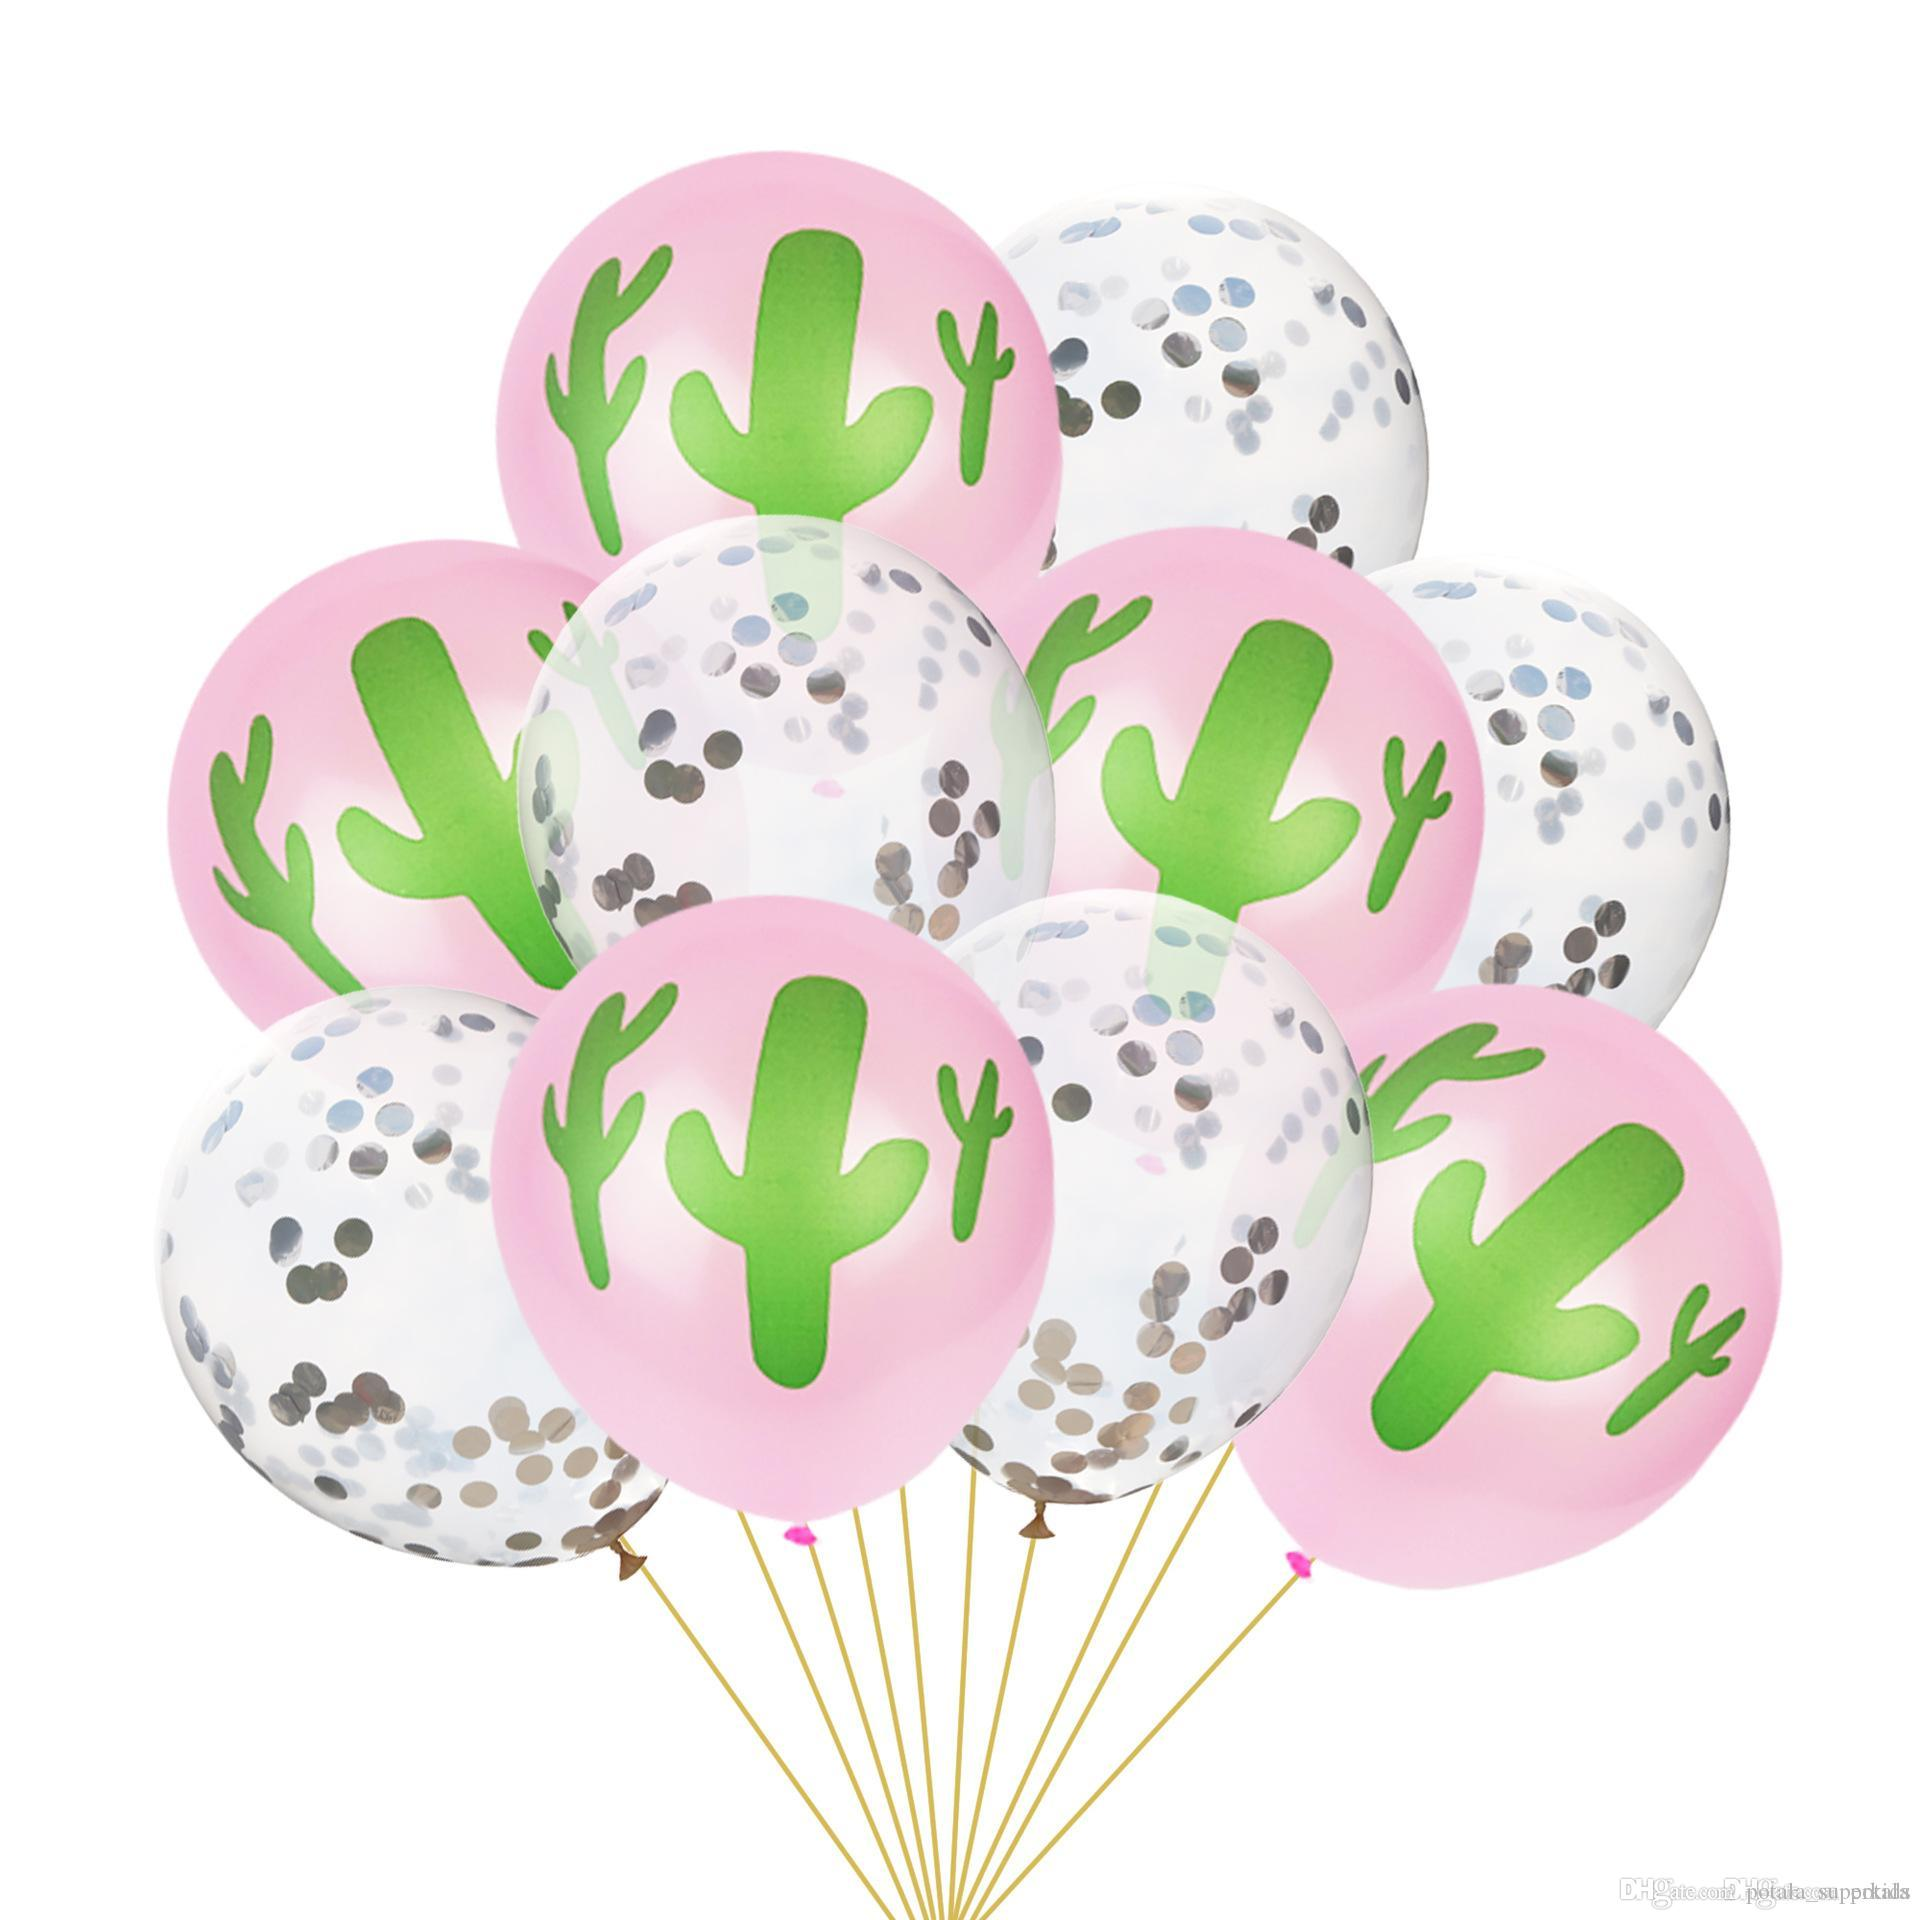 10inch cactus balloons12inch transparent balloons latex ballons